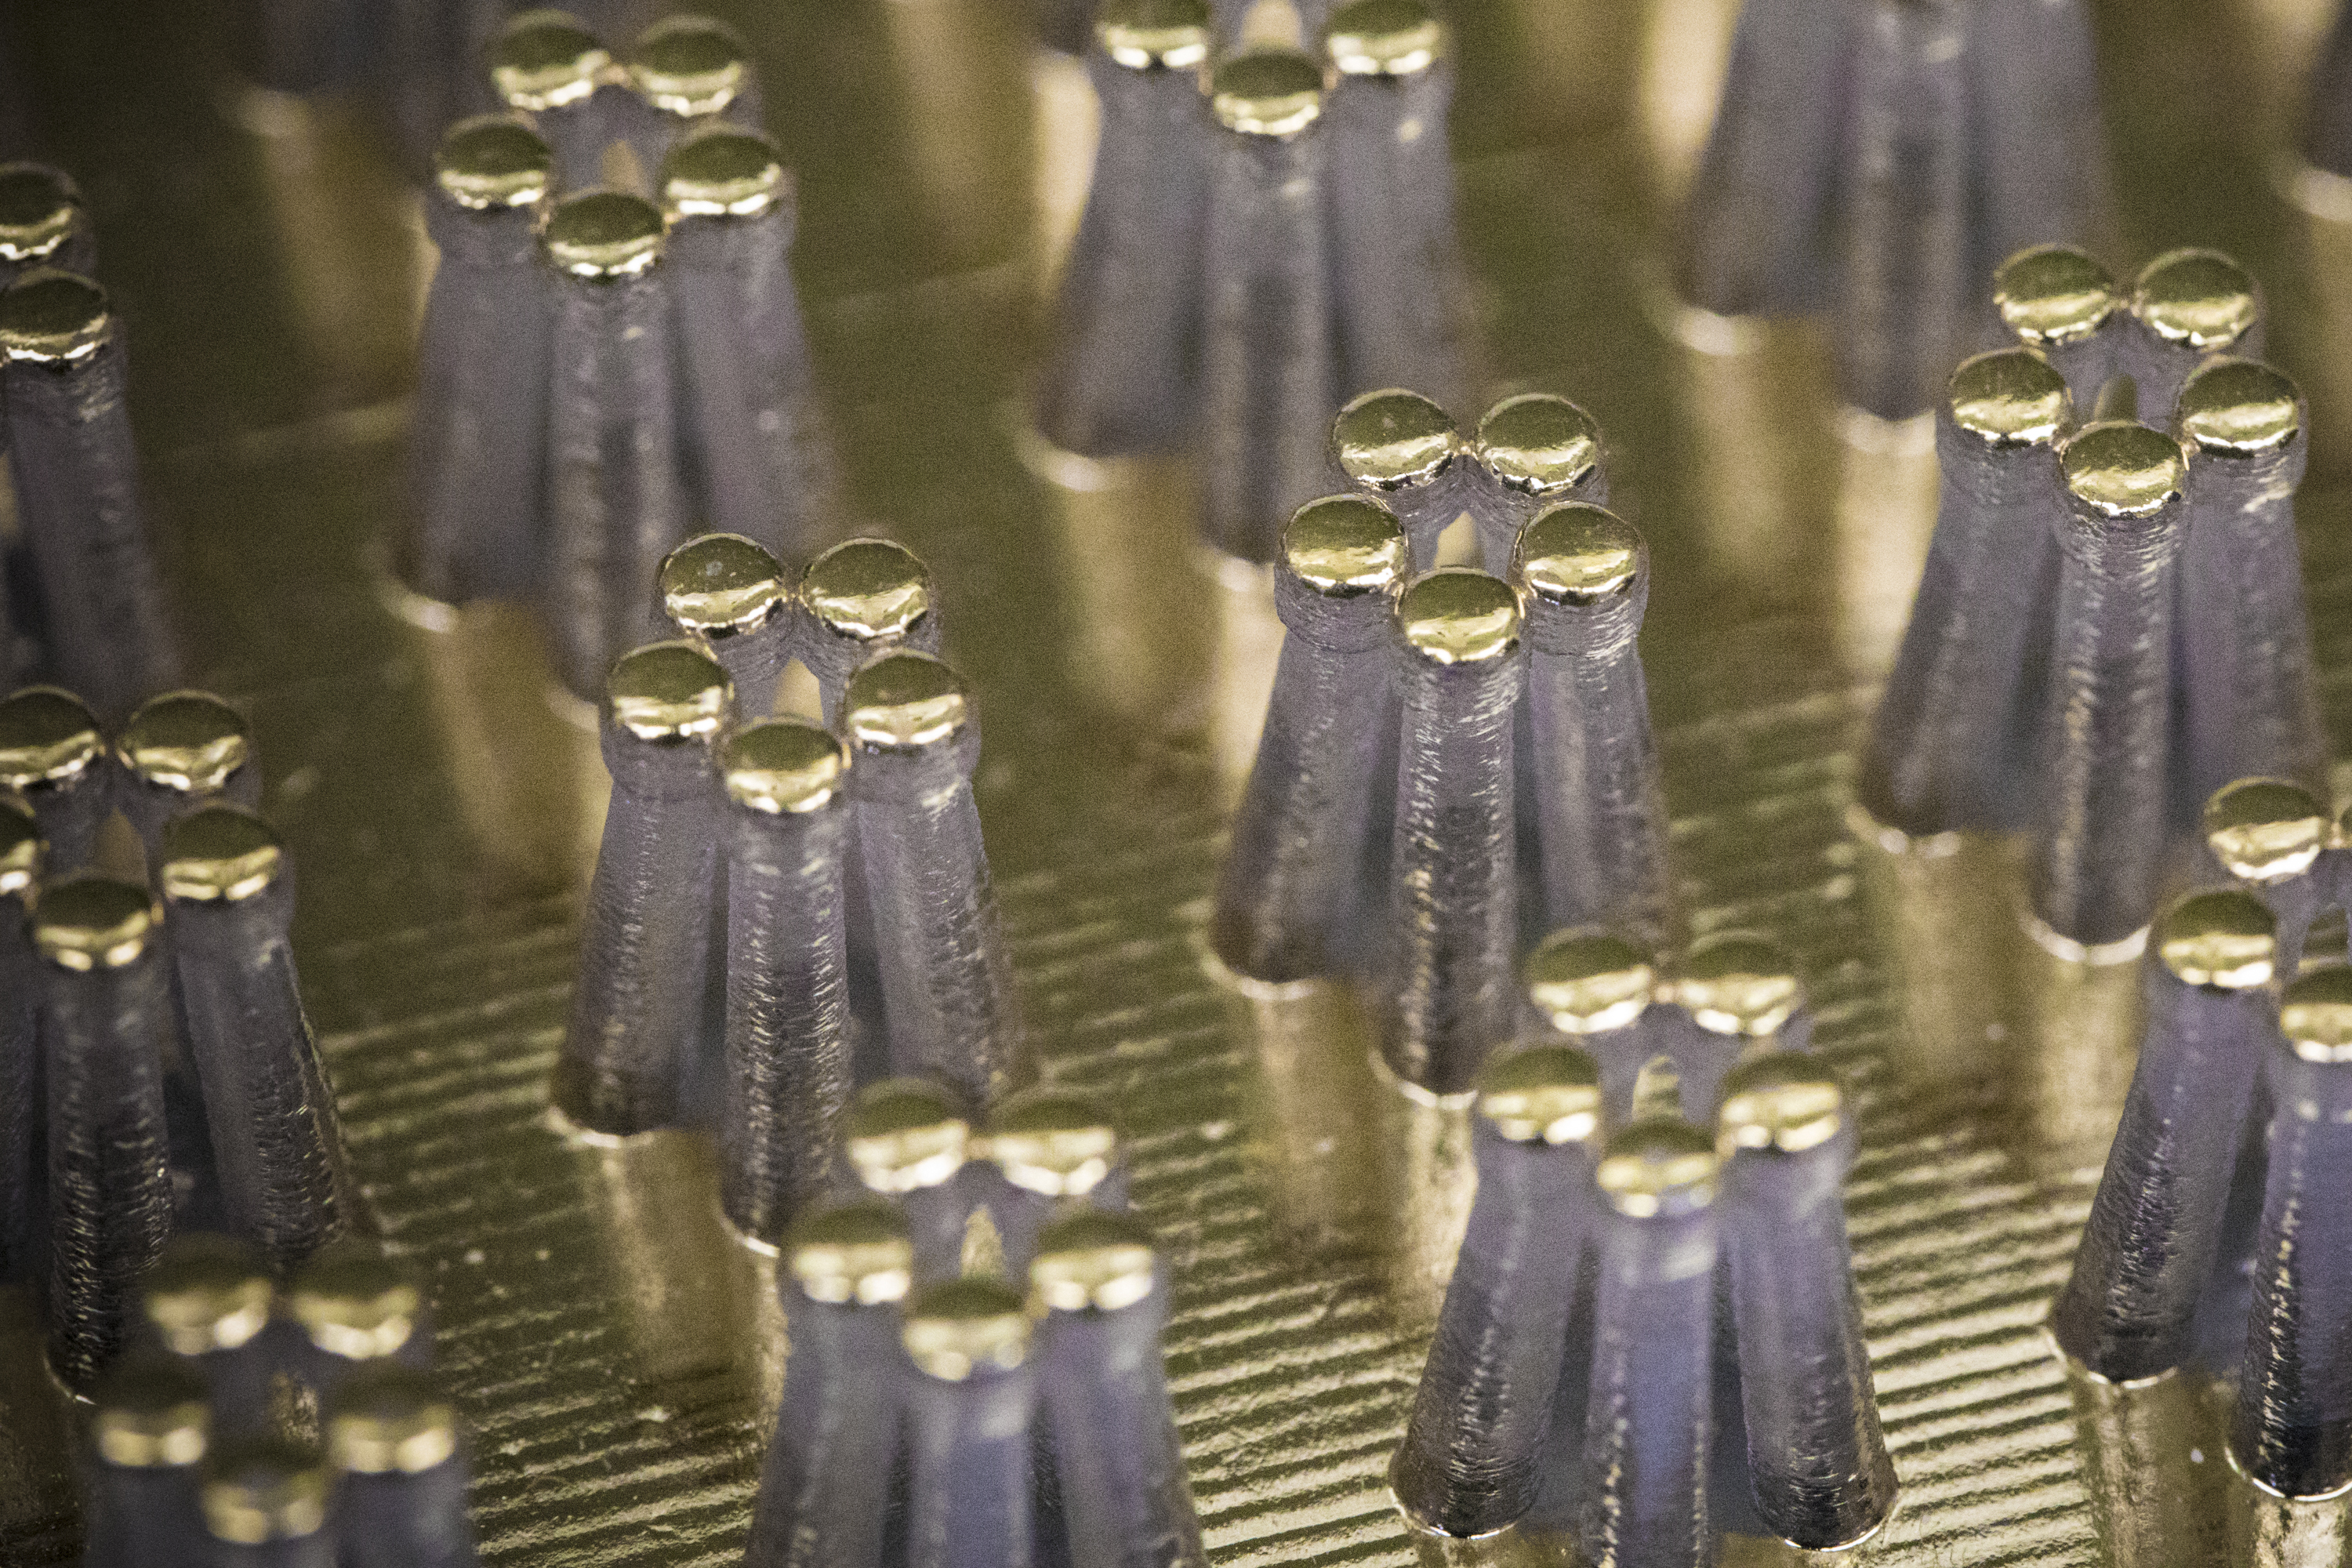 This model of HP Lab's nanofingers, thousands of times larger than the real-world item, shows the pillars that can effectively grasp individual molecules for analysis.